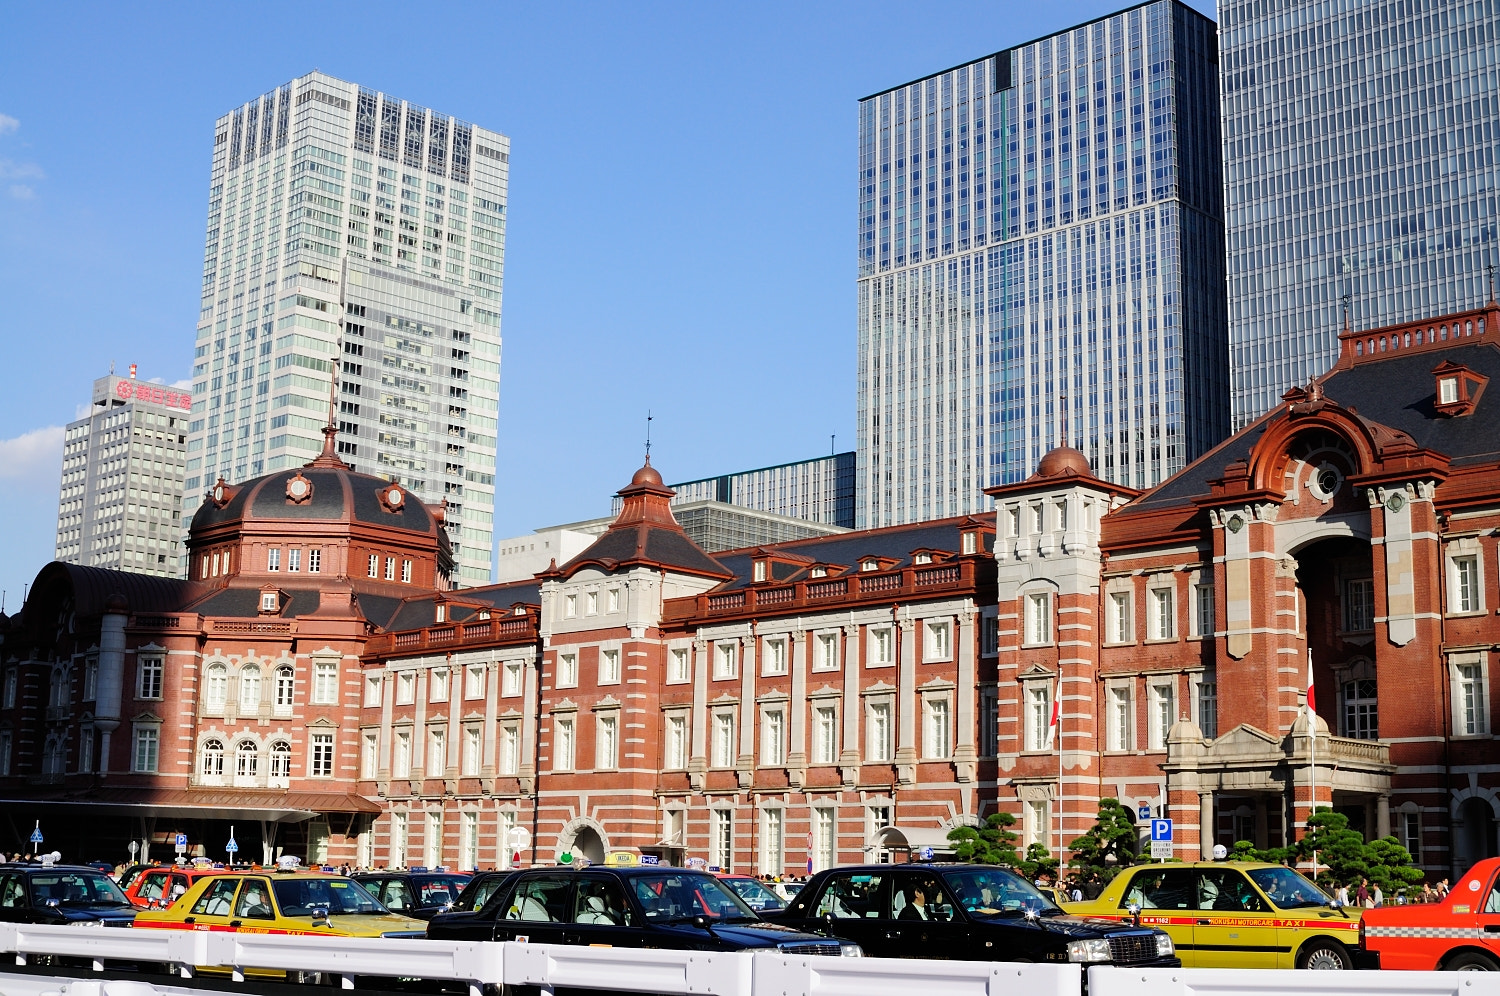 Photograph Tokyo Station by Naoyoshi Tamura on 500px